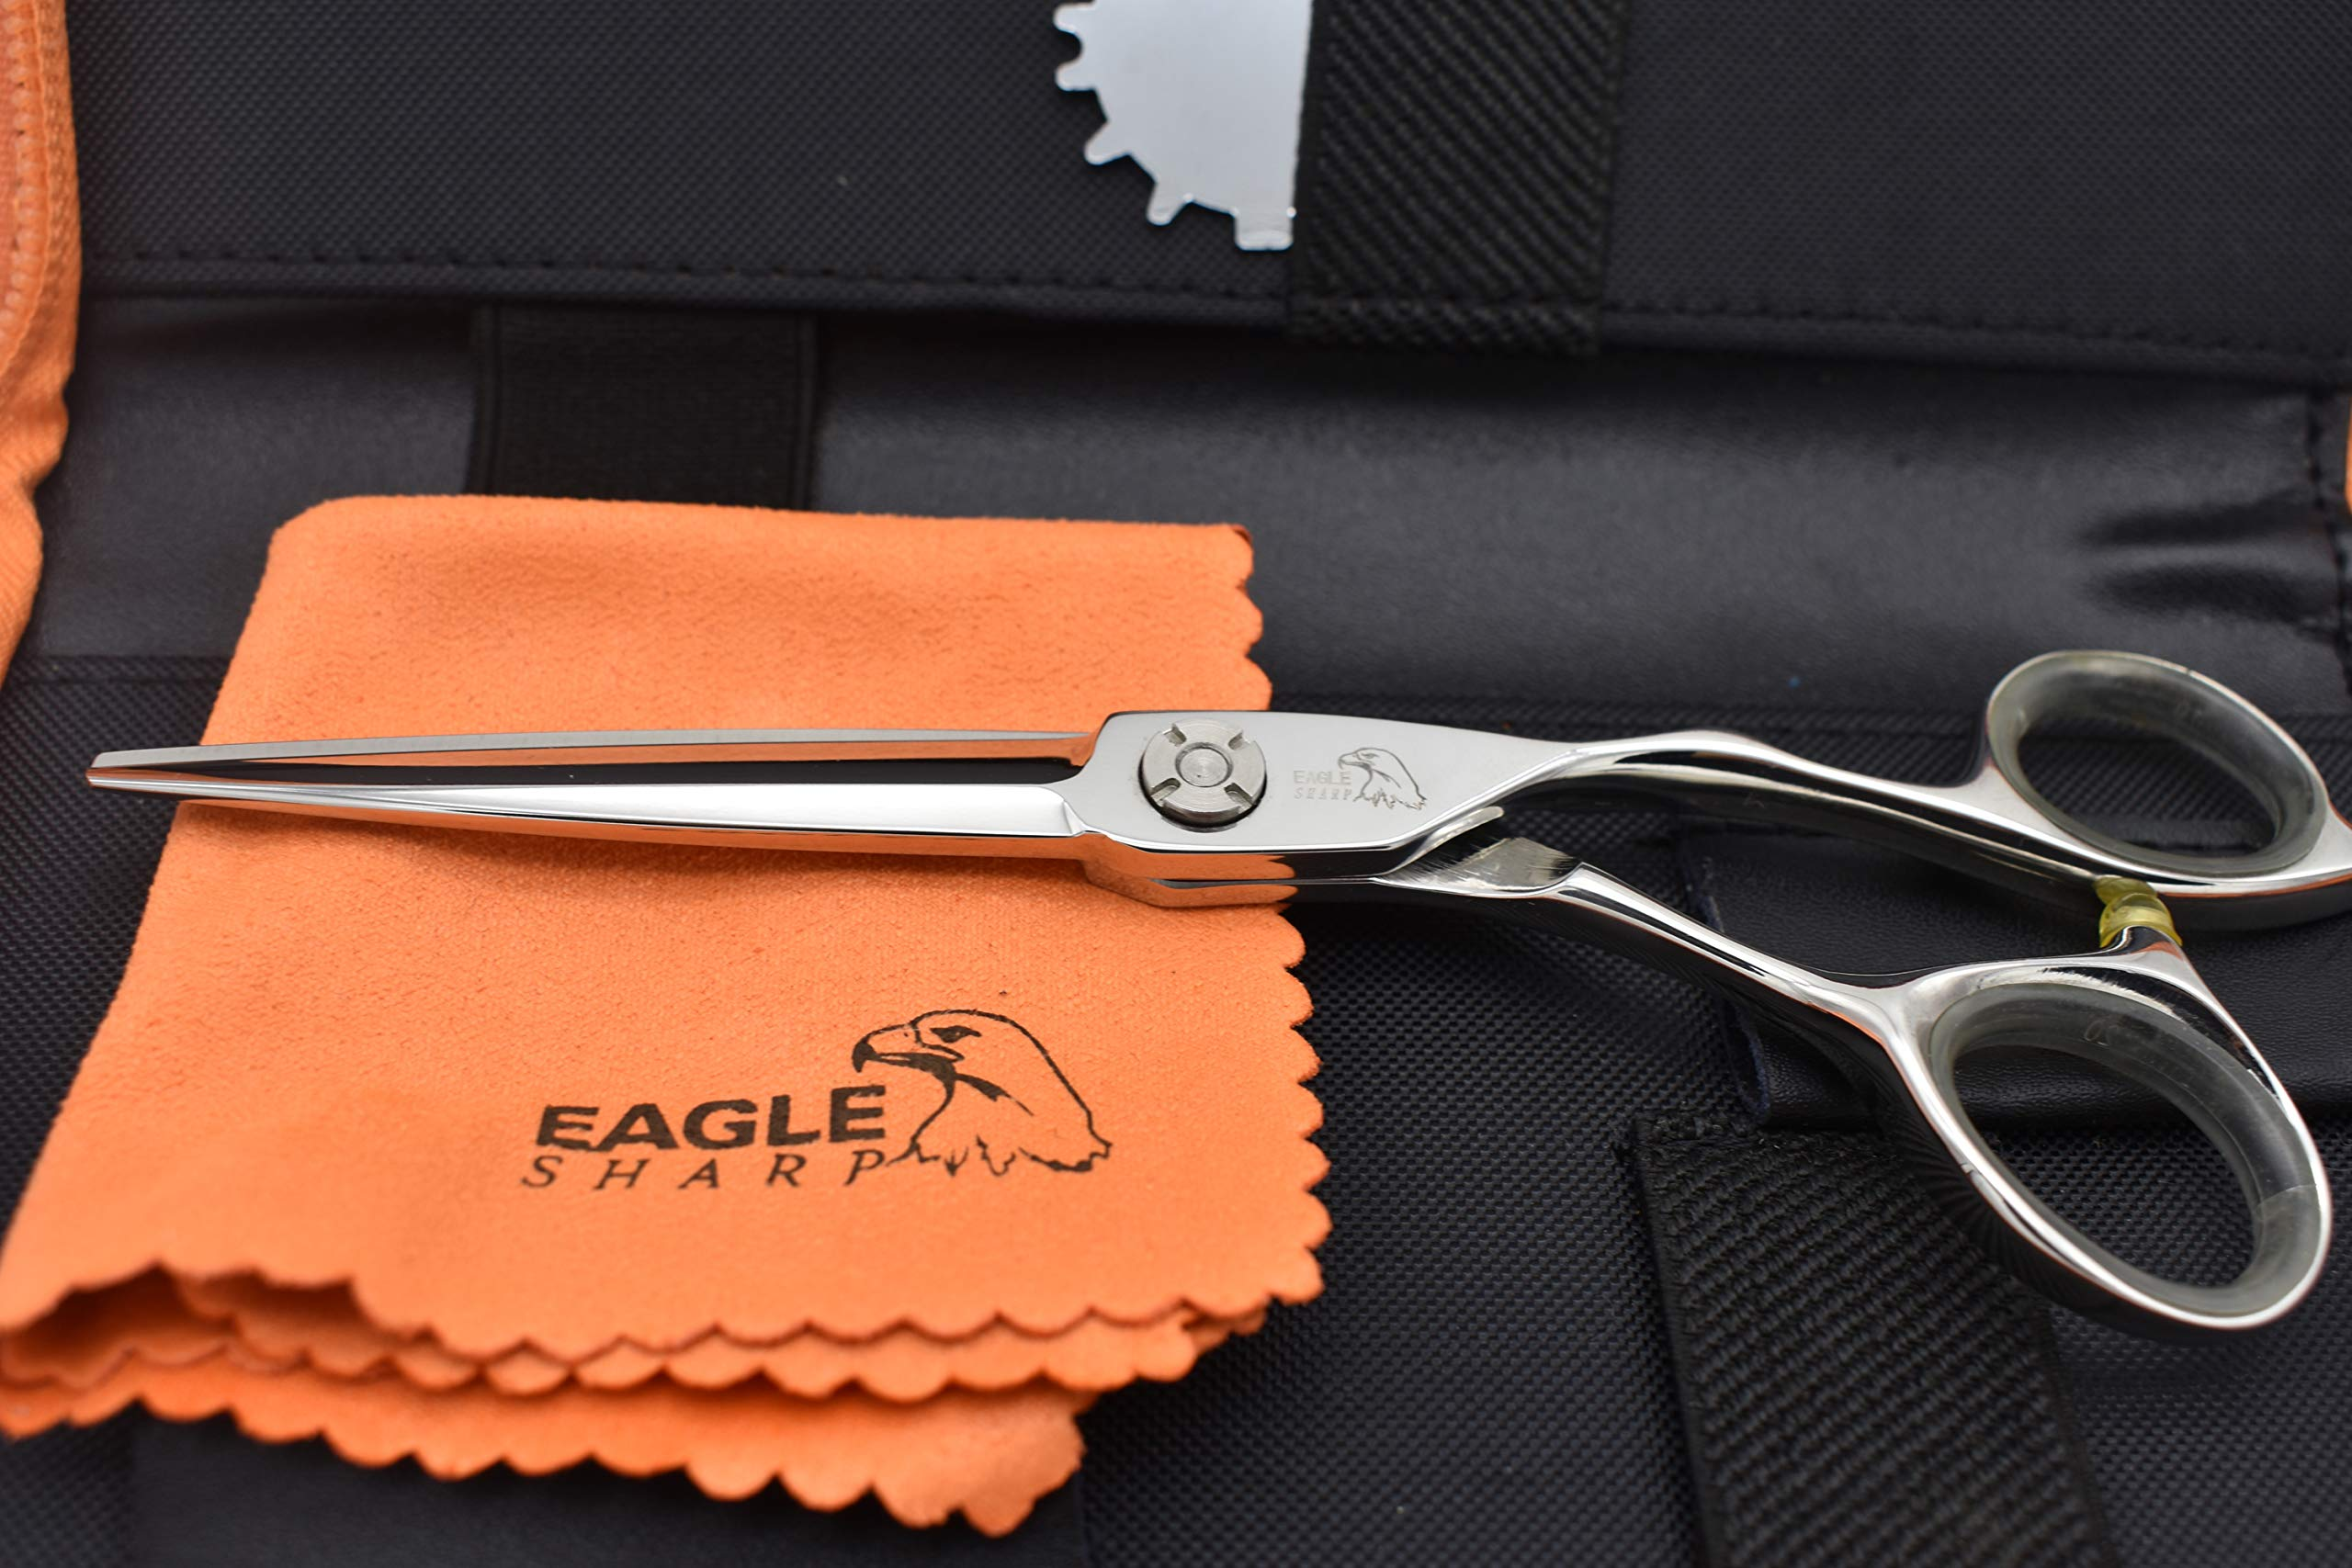 Professional Hair Scissors/Shears 6.5 inch For Barber/Hairdresser Cutting/Hairdressing Hair Convex Edge Blade Japanese Steel Shears 440c Forged (6.5'' Cutting) by EAGLE SHARP (Image #4)